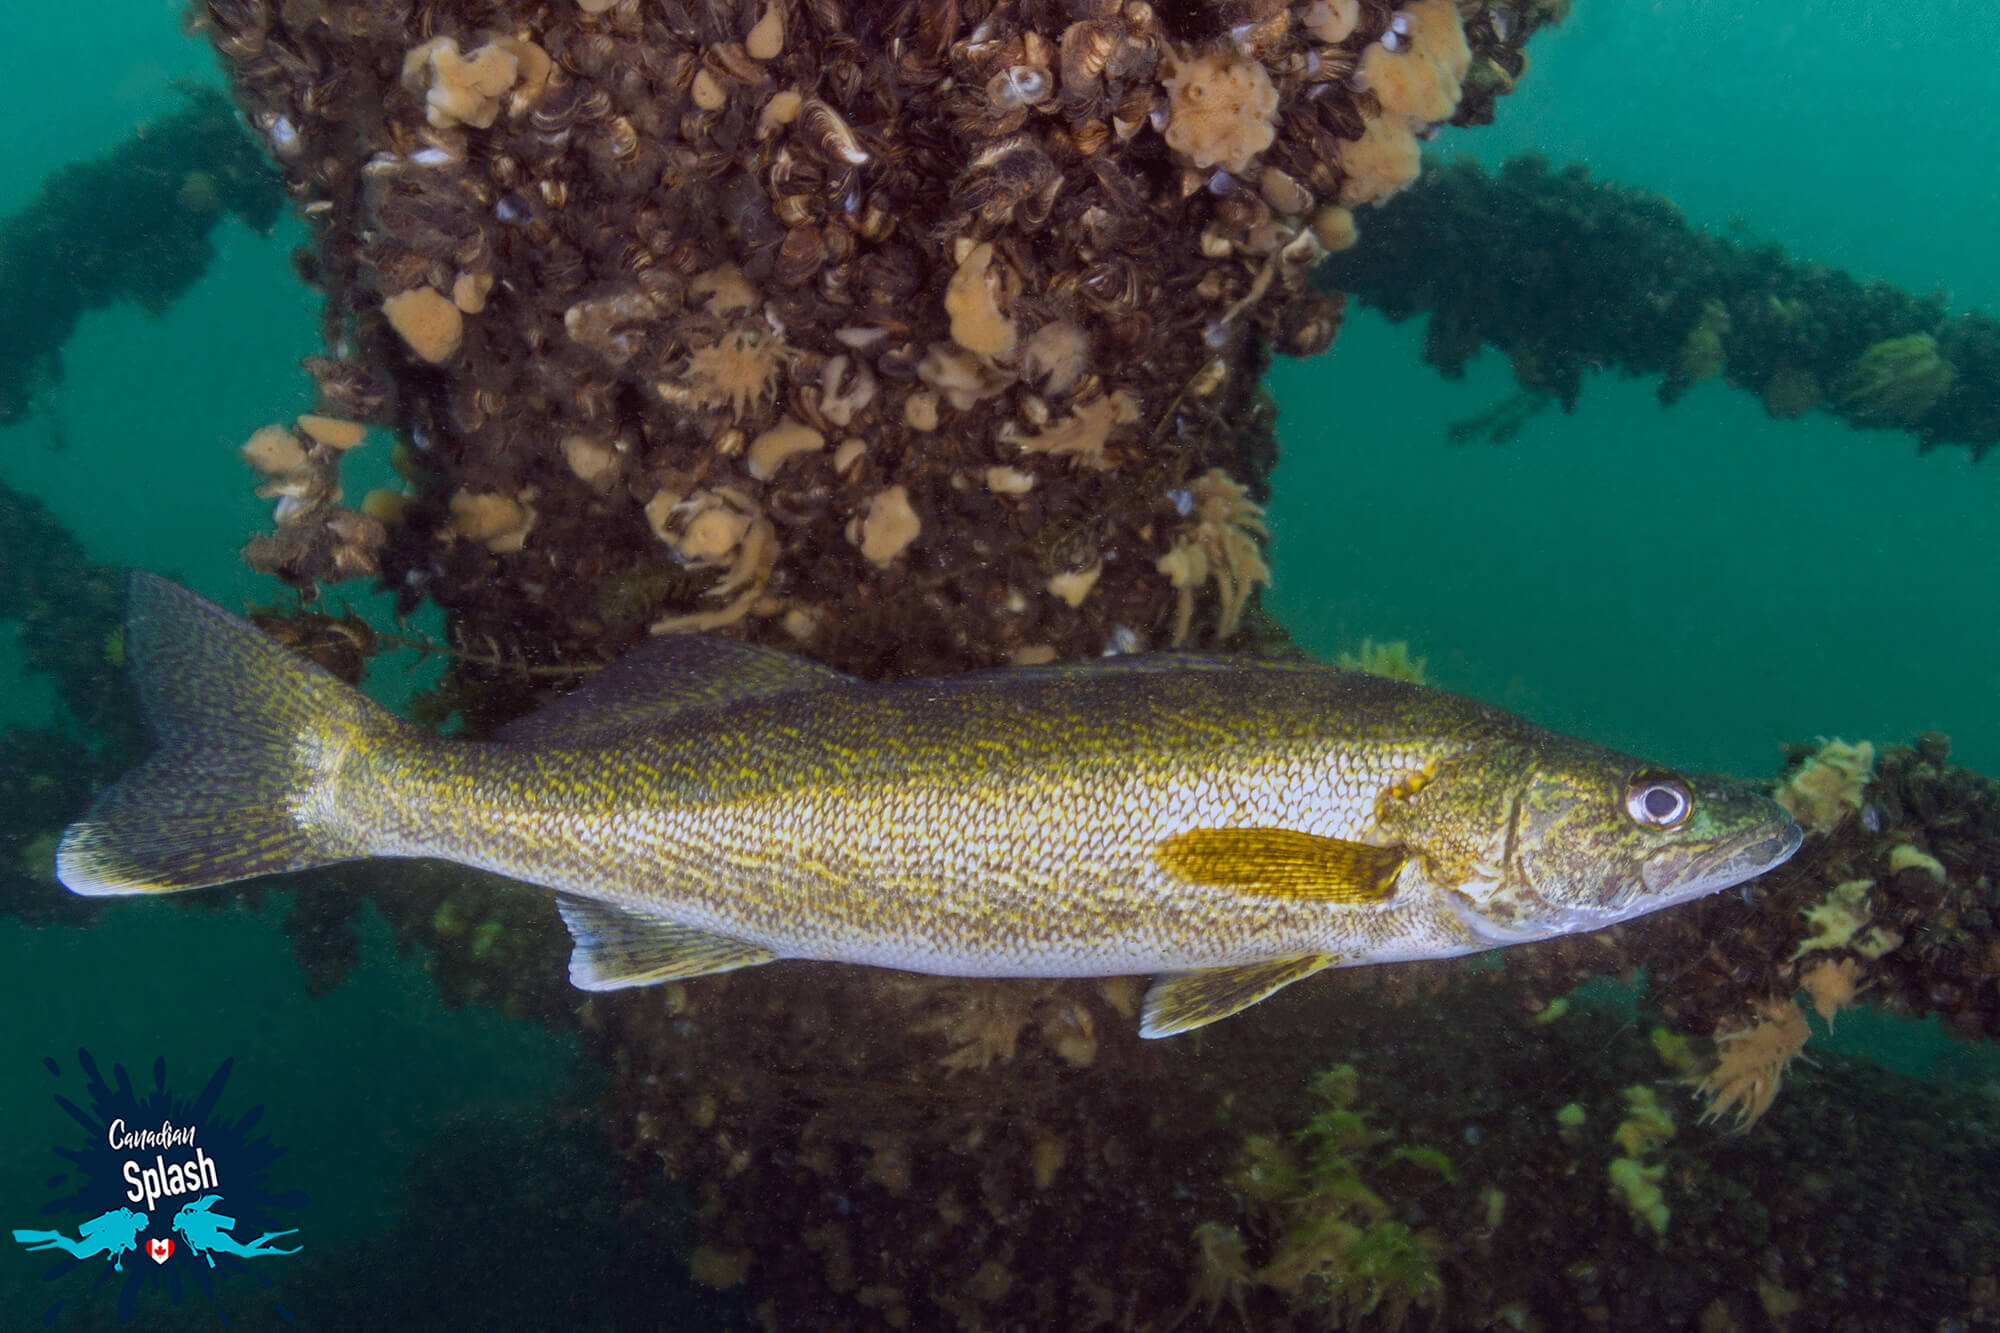 A Walleye In The Rubble Of A Shipwreck In Brockville, Ontario, Scuba Diving Canada